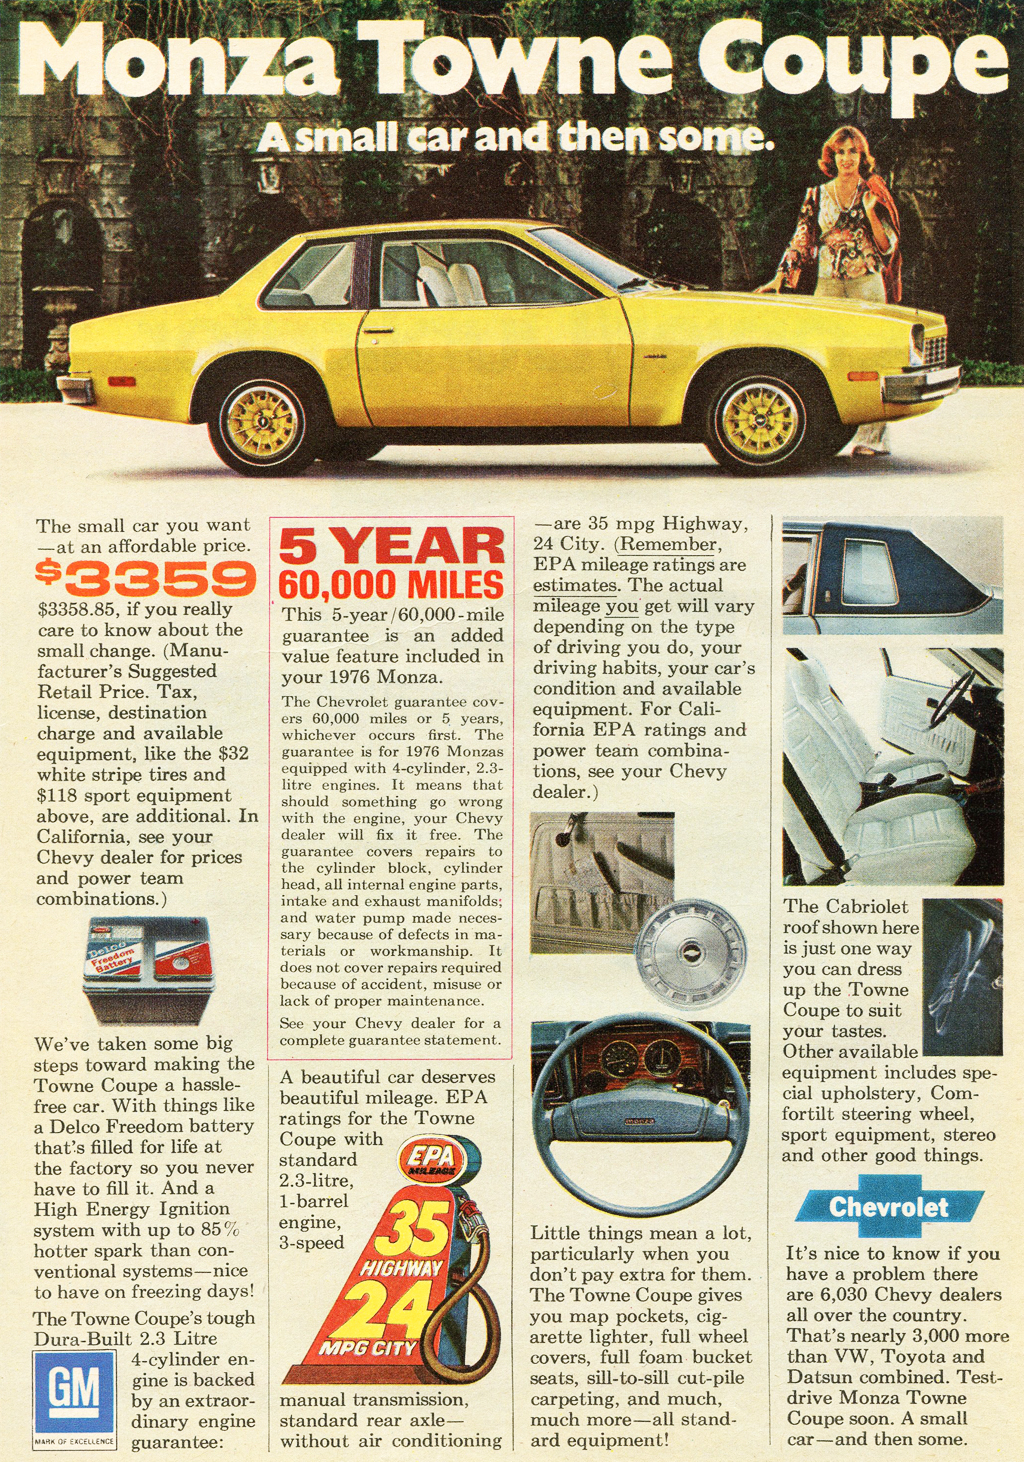 All Chevy 1976 chevrolet monza : 1976 Chevrolet Monza Towne Coupe ad b | CLASSIC CARS TODAY ONLINE